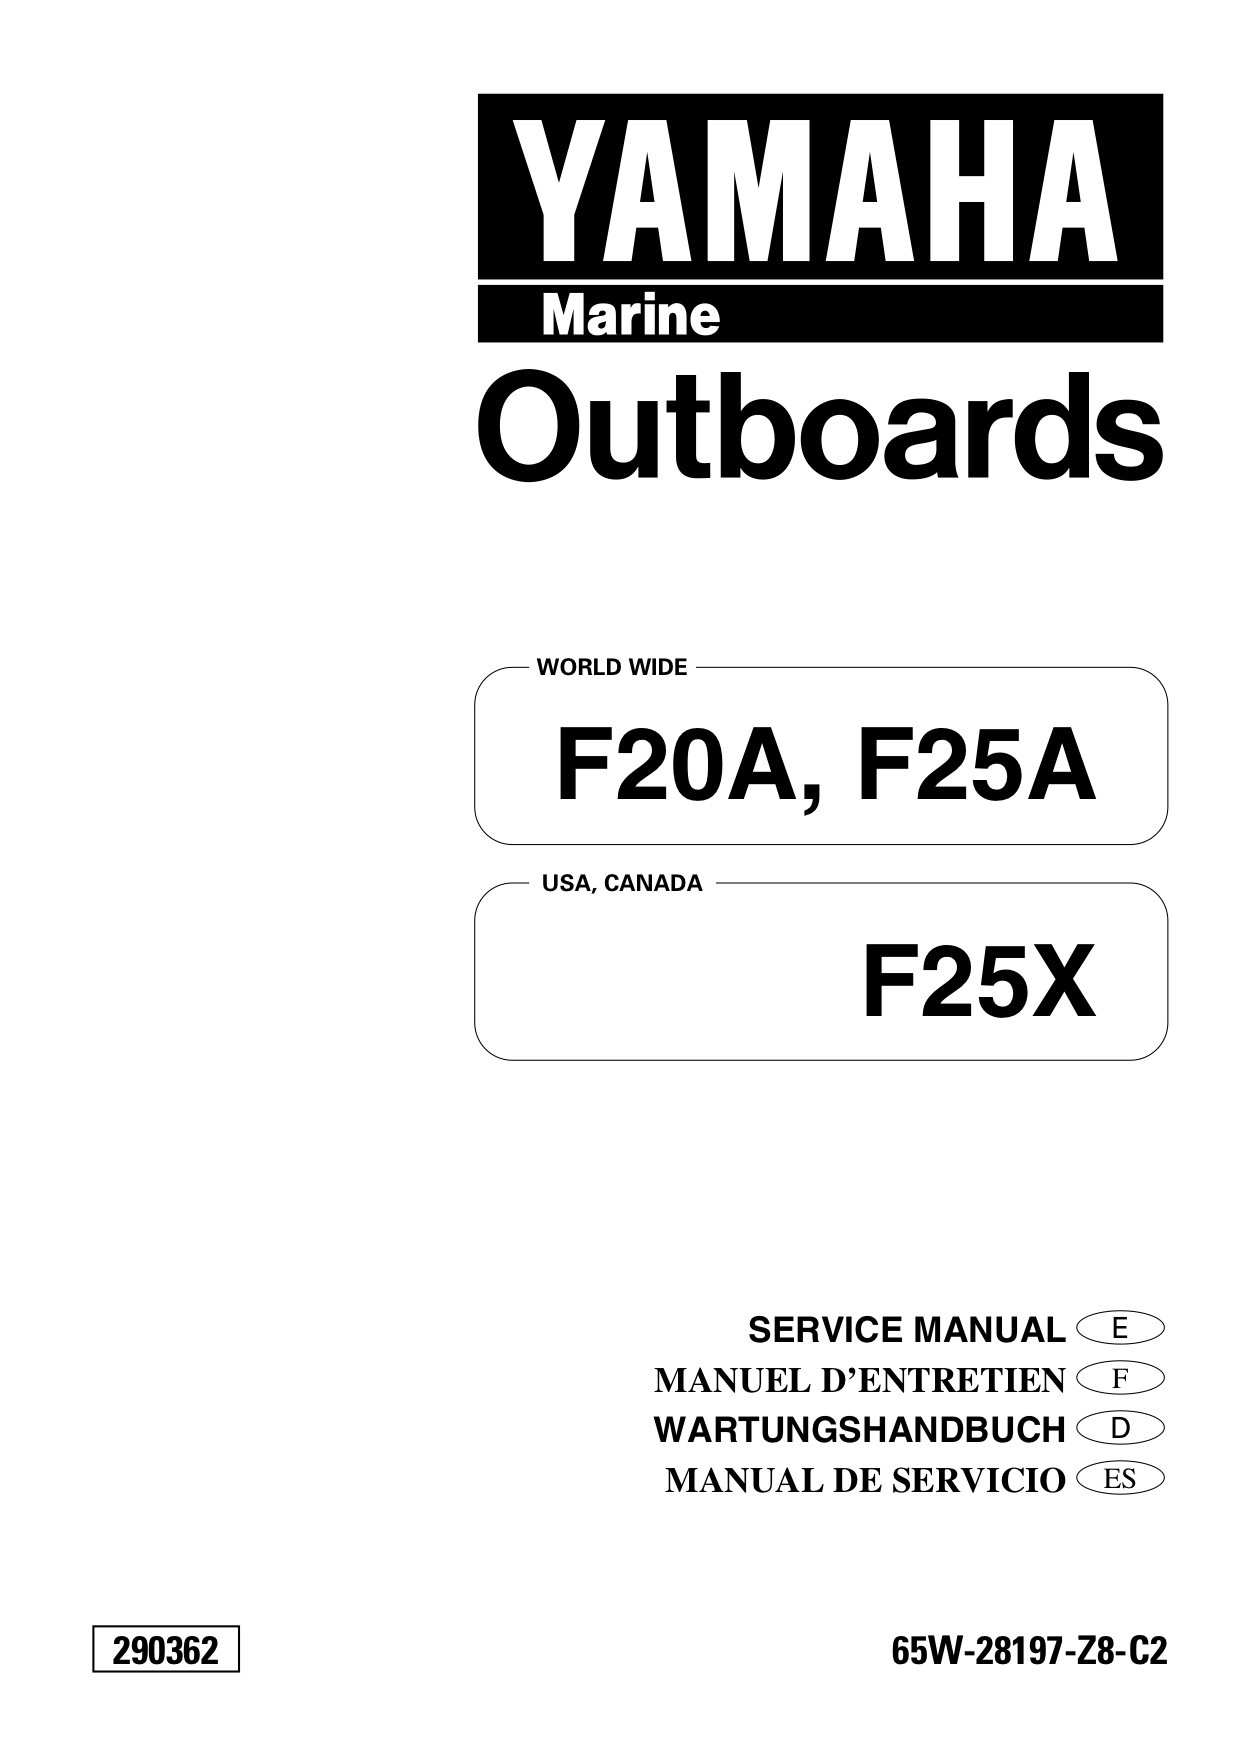 Yamaha F20 Manual Iveco Daily Diagram Repair Manuals Wiring Diagrams Service 1st Page Array Manuel F25 Rh Engine